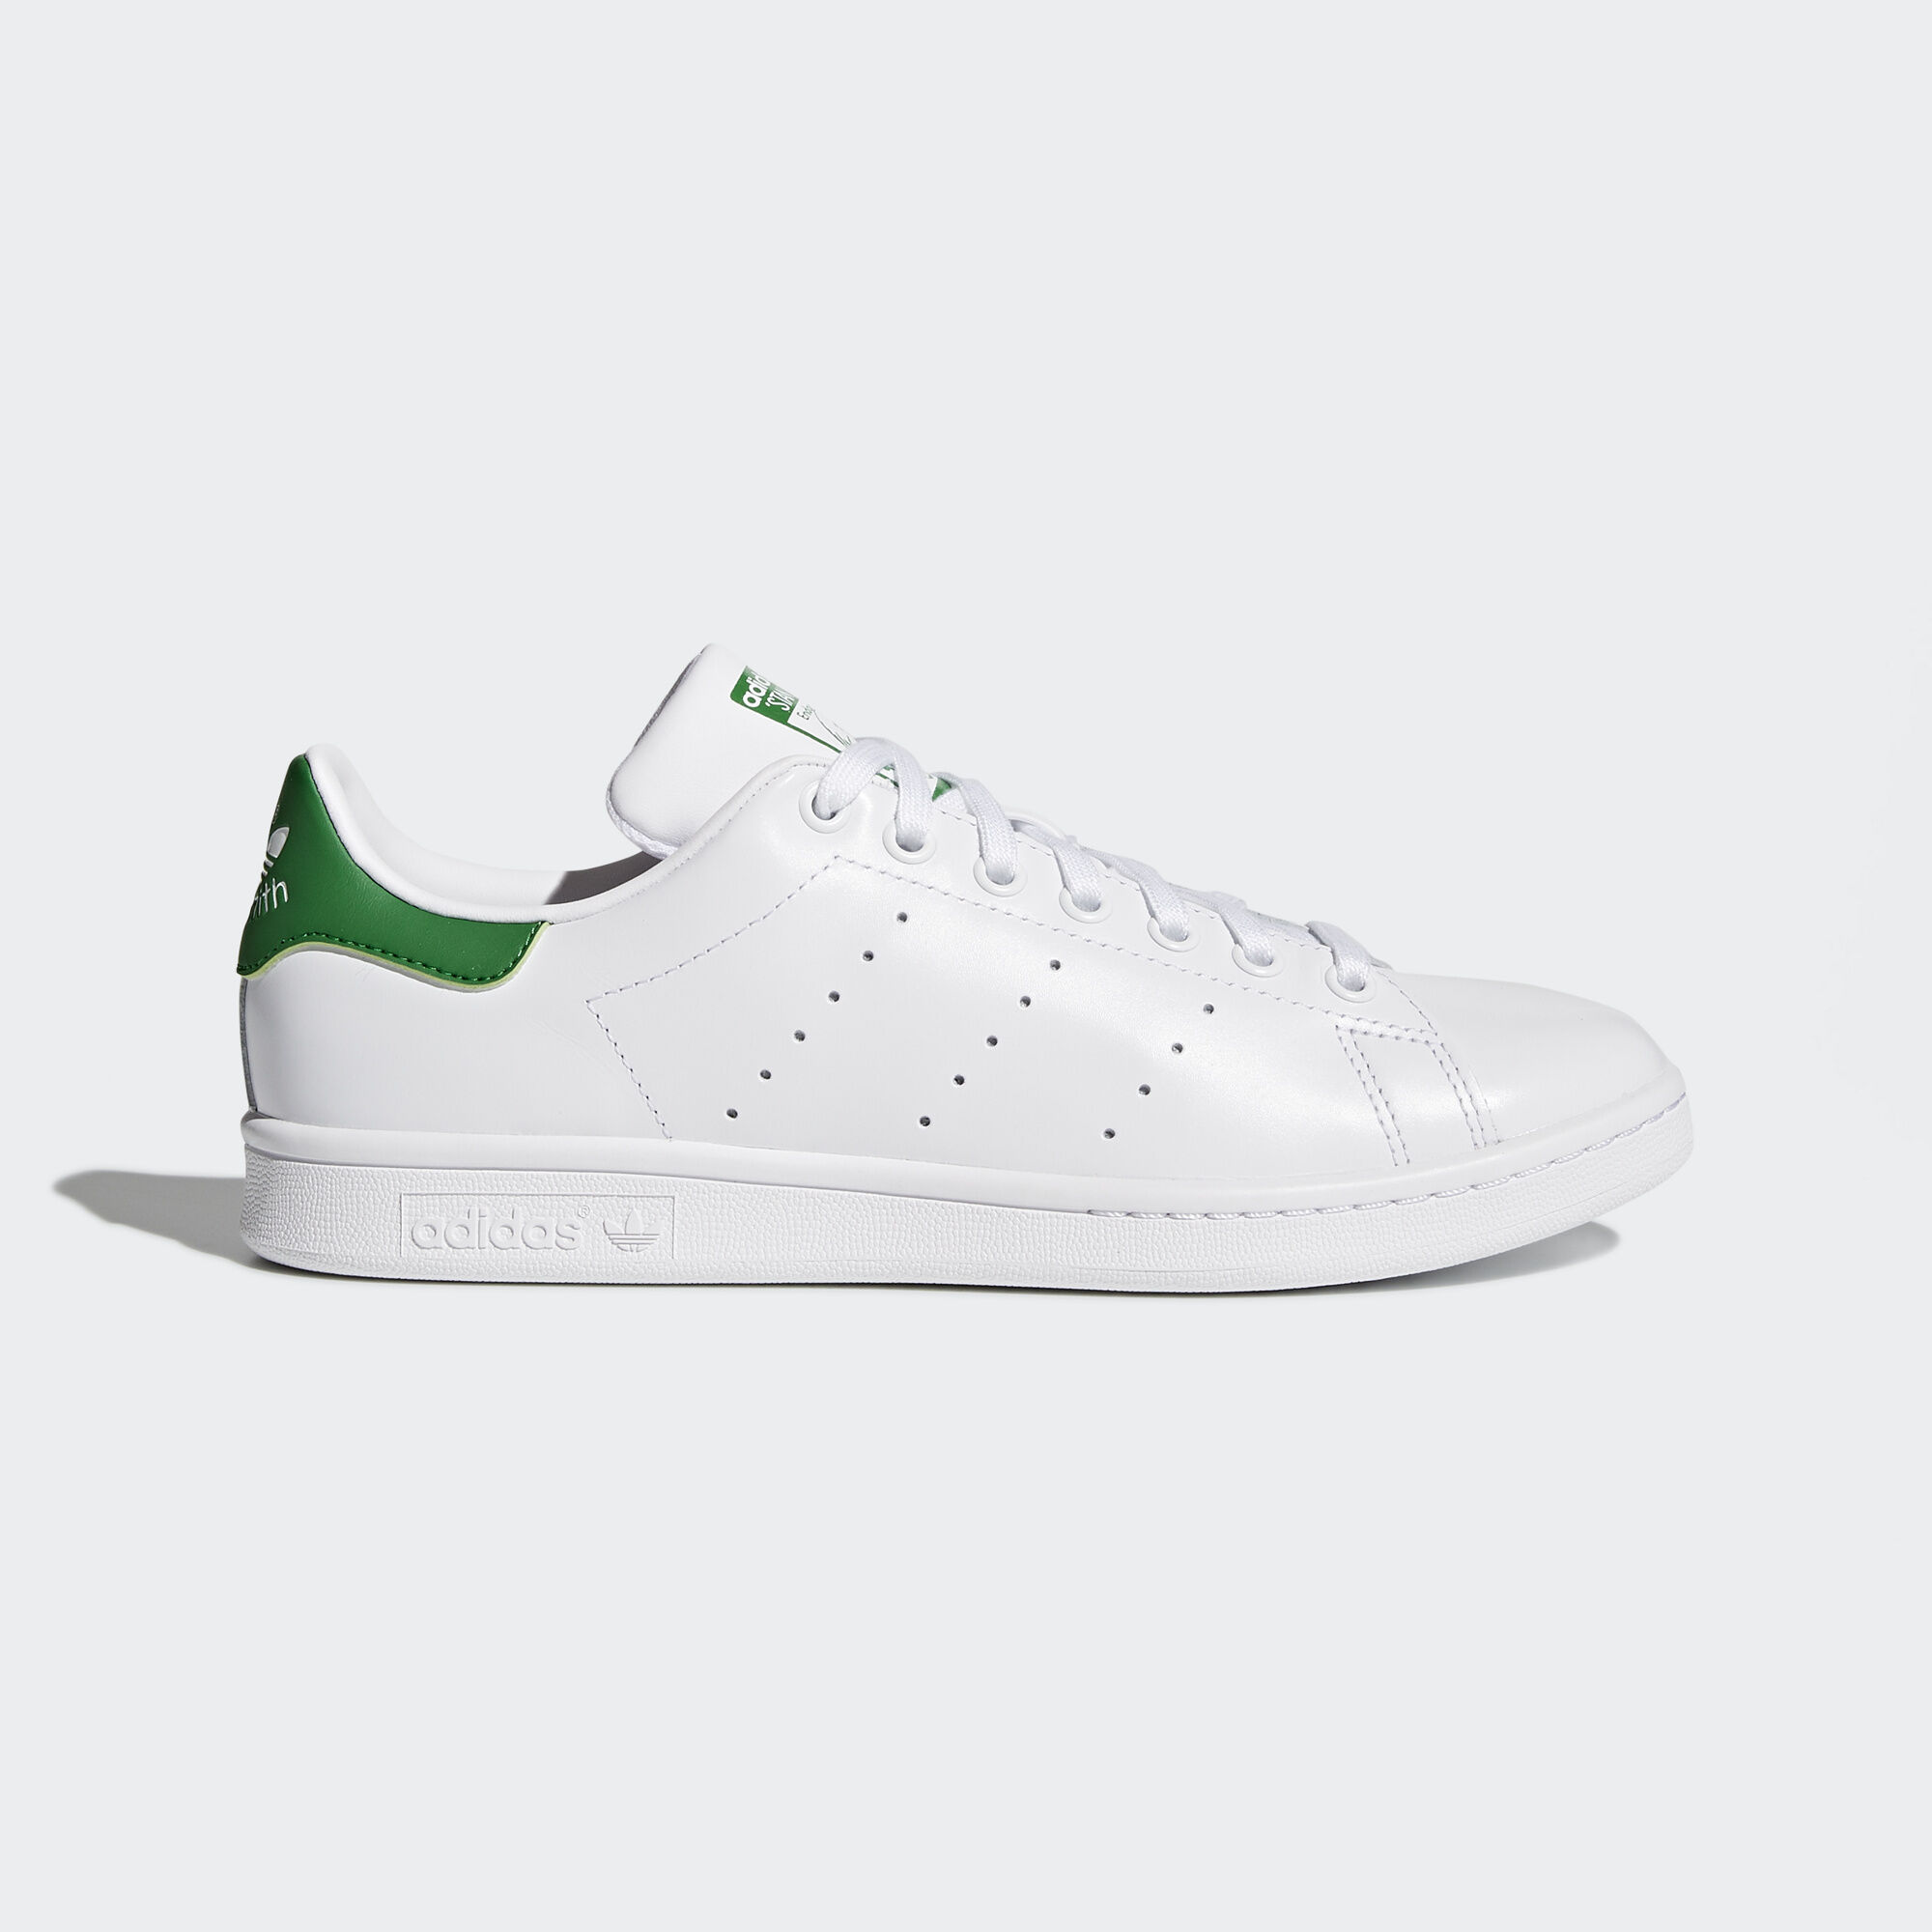 Adidas Originals All Sneakers